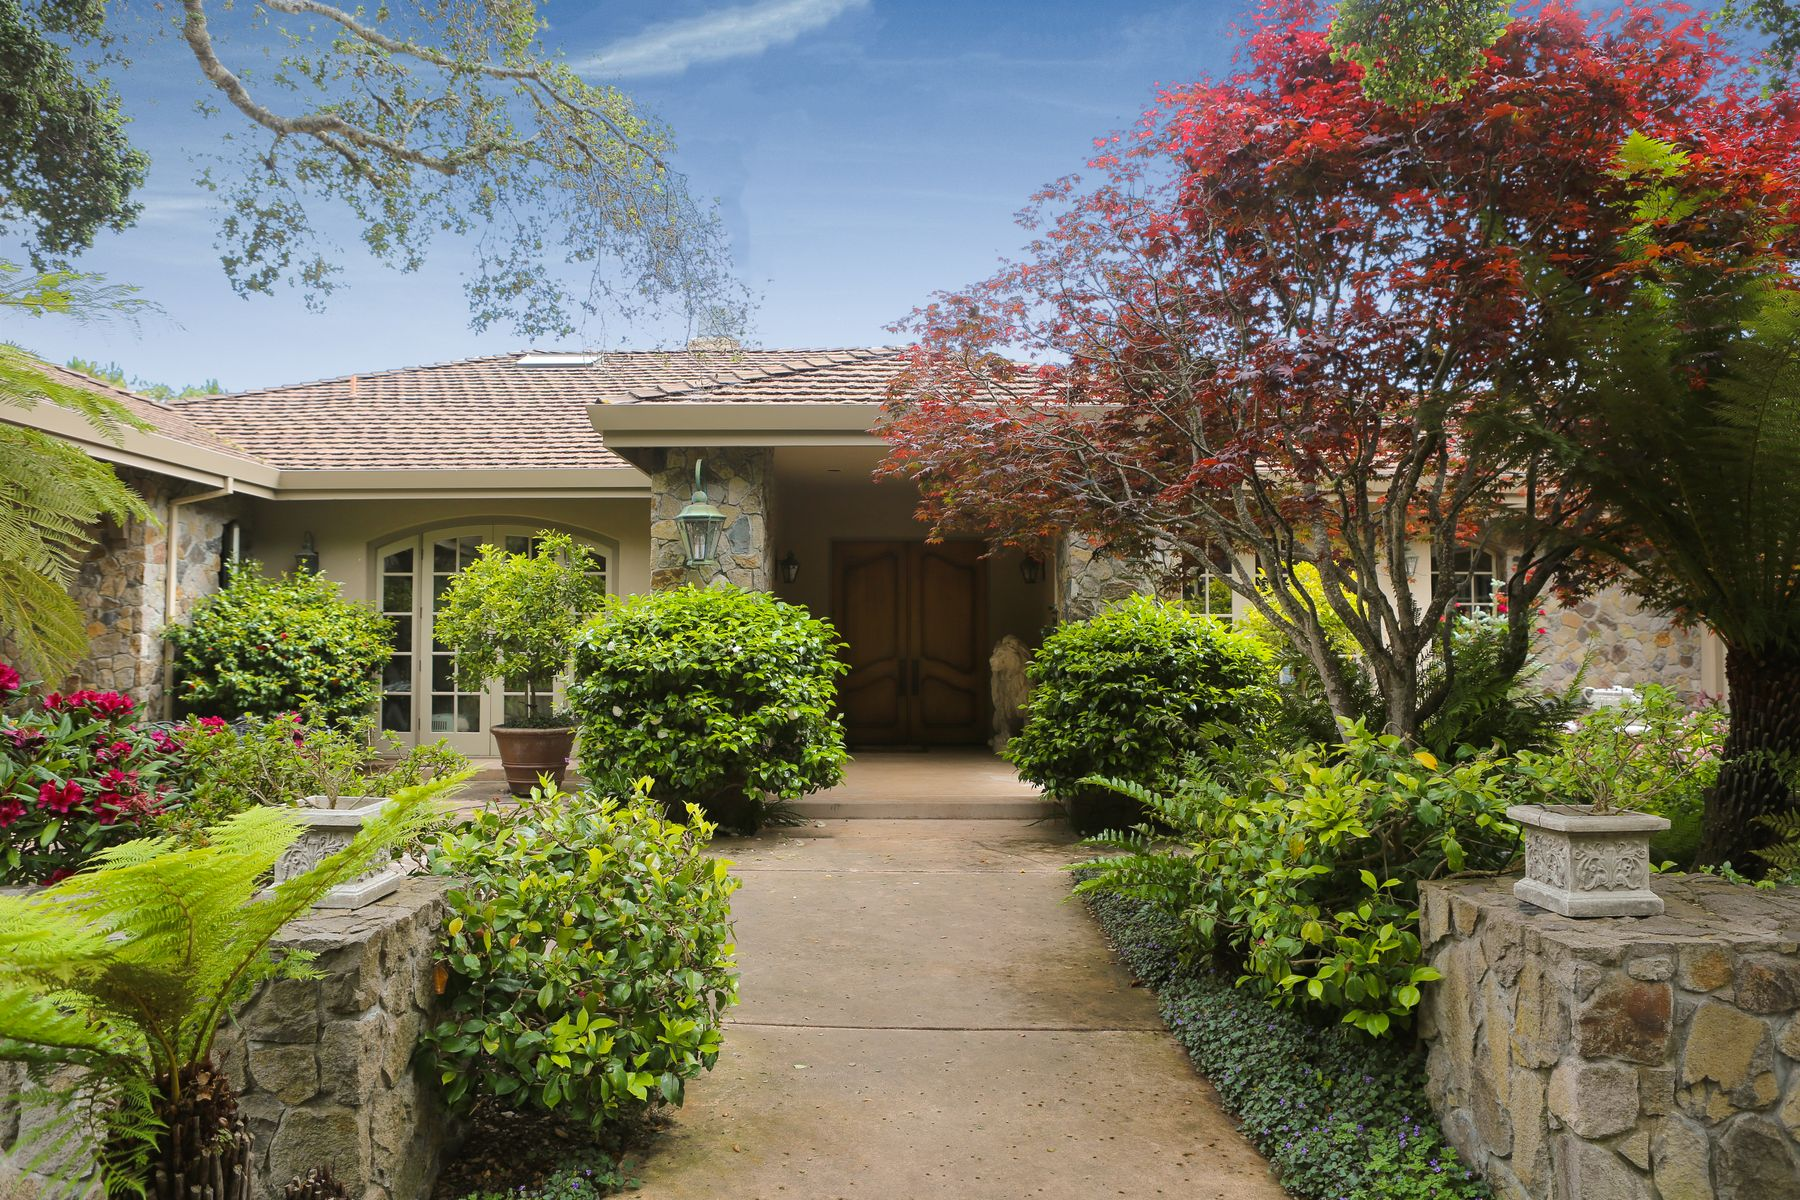 Single Family Homes for Active at Quail Tranquility 5465 Quail Meadows Drive Carmel, California 93923 United States